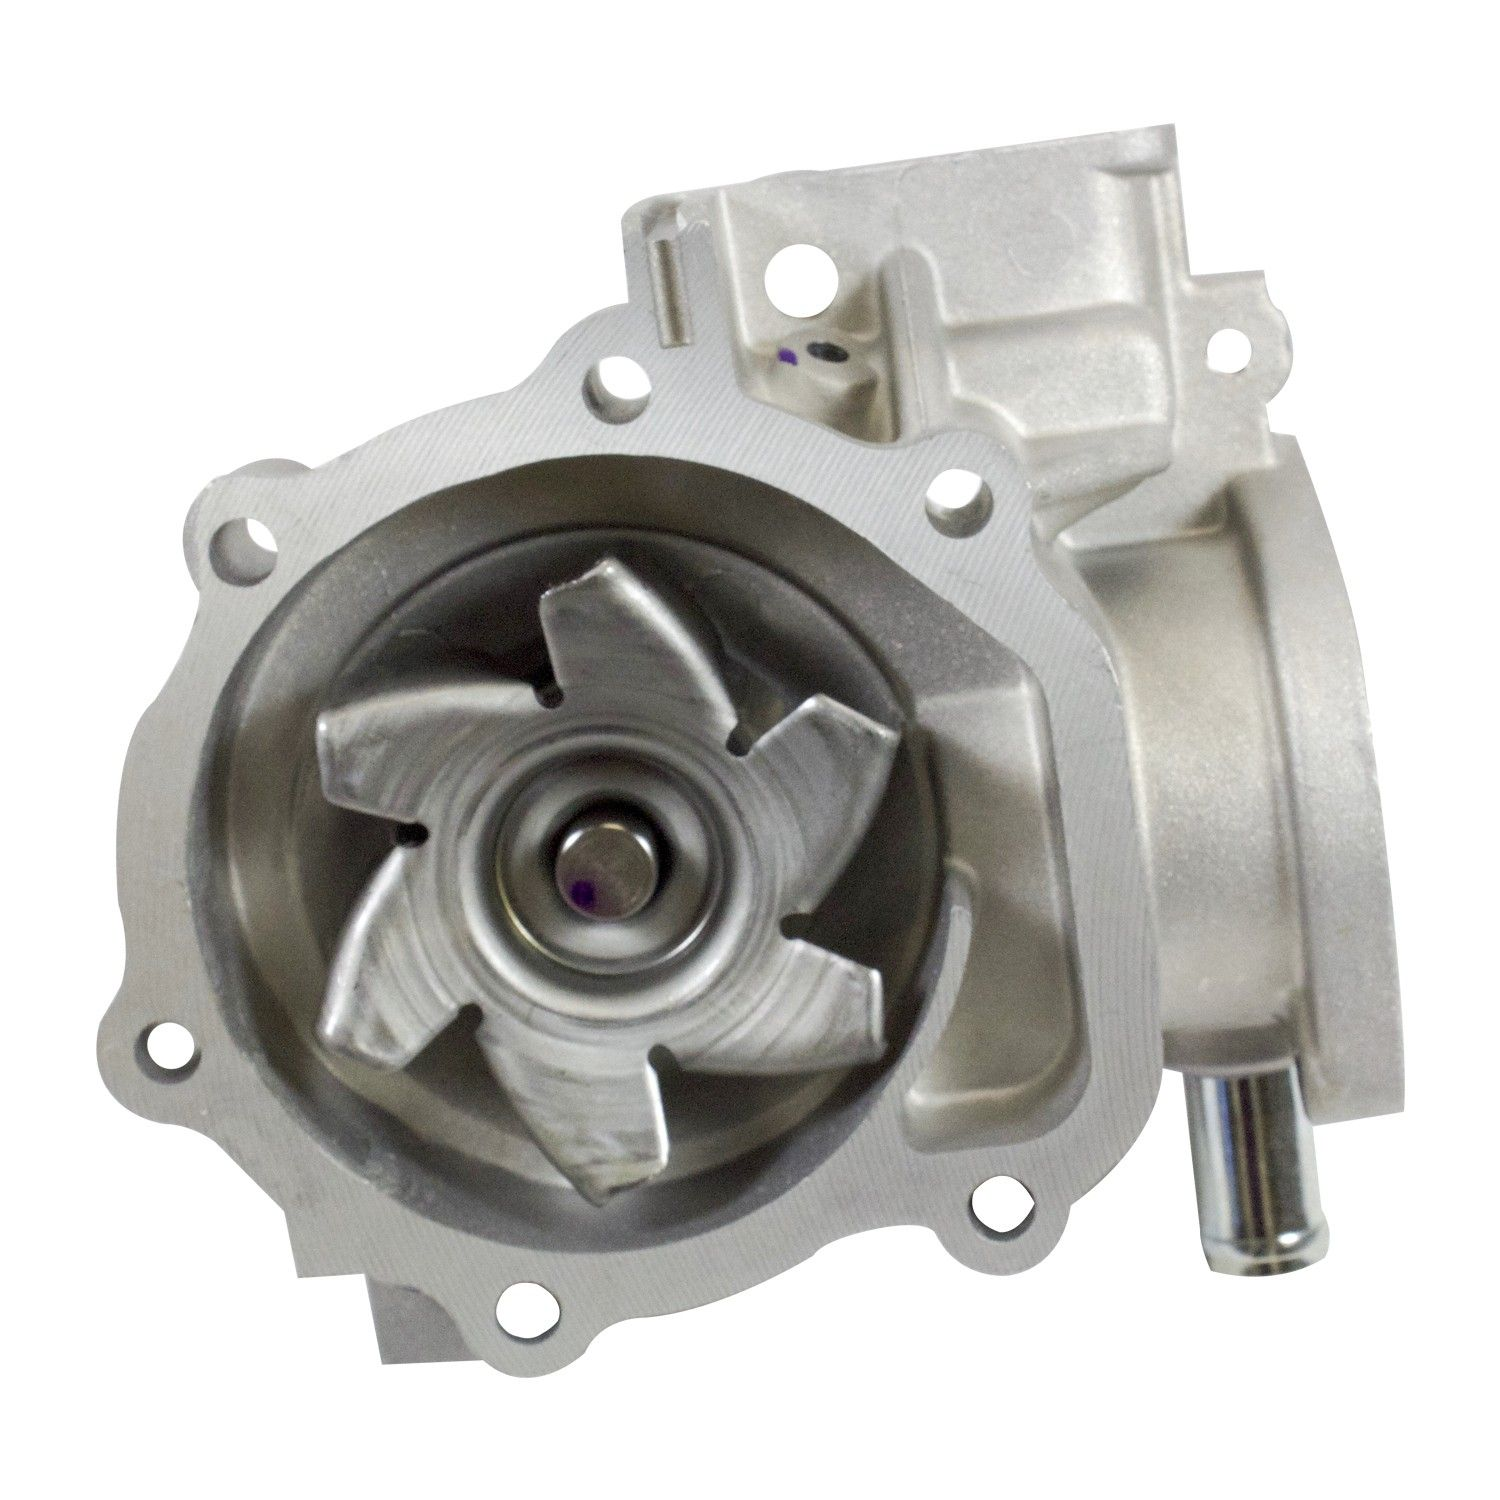 Subaru Outback Engine Water Pump Replacement Aisin Airtex 2000 Transmission Diagram 4 Cyl 25l Gmb 160 1120